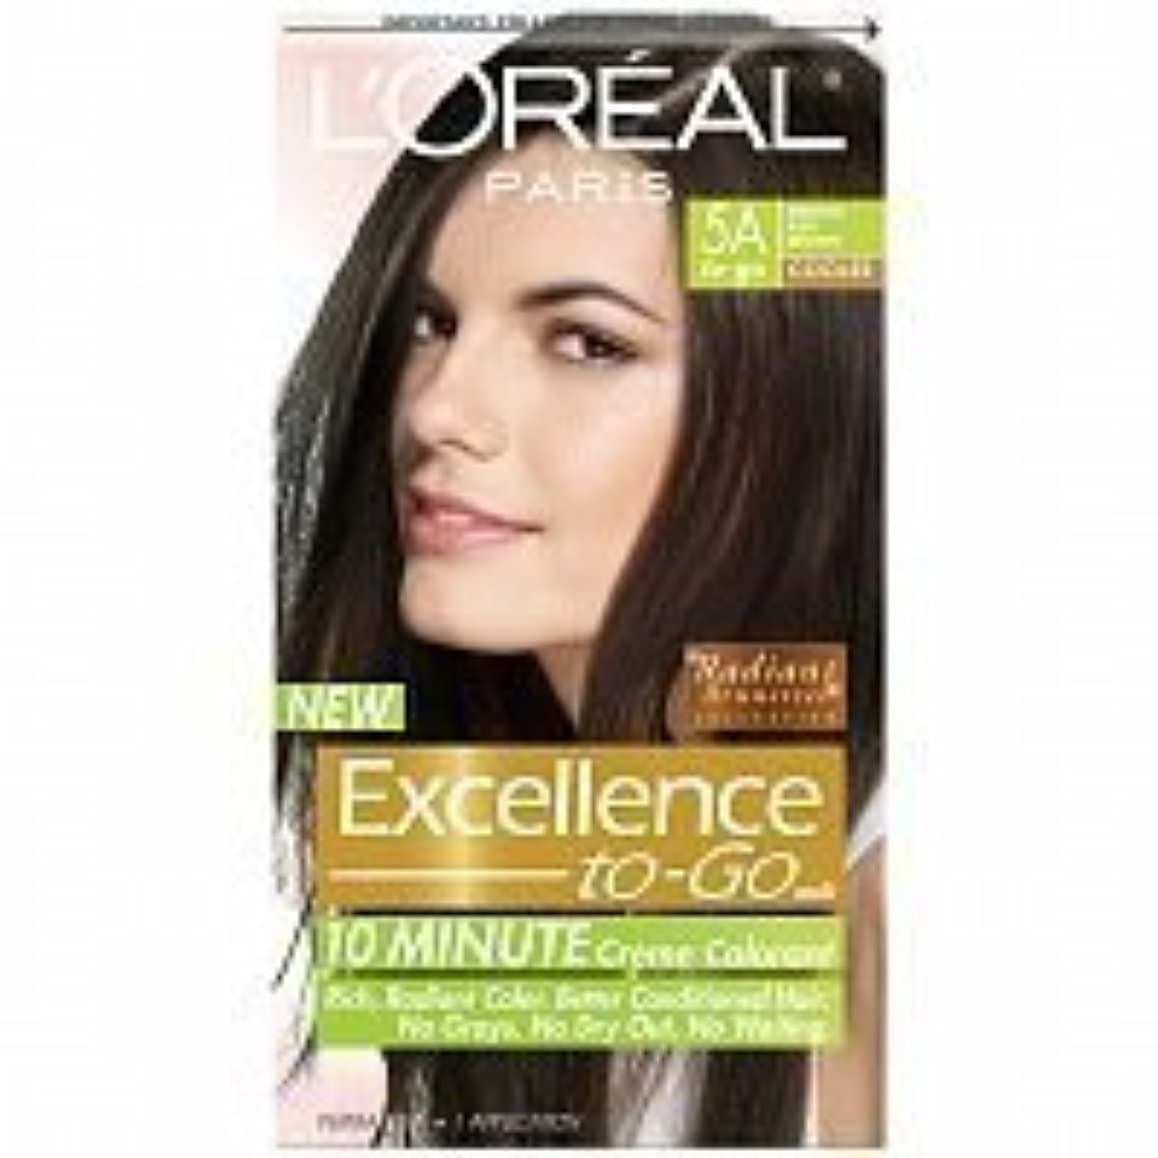 贈り物継続中シャークL'Oreal Paris Excellence To-Go 10-Minute Cr?N?Nme Coloring, Medium Ash Brown 5A by L'Oreal Paris Hair Color [並行輸入品]